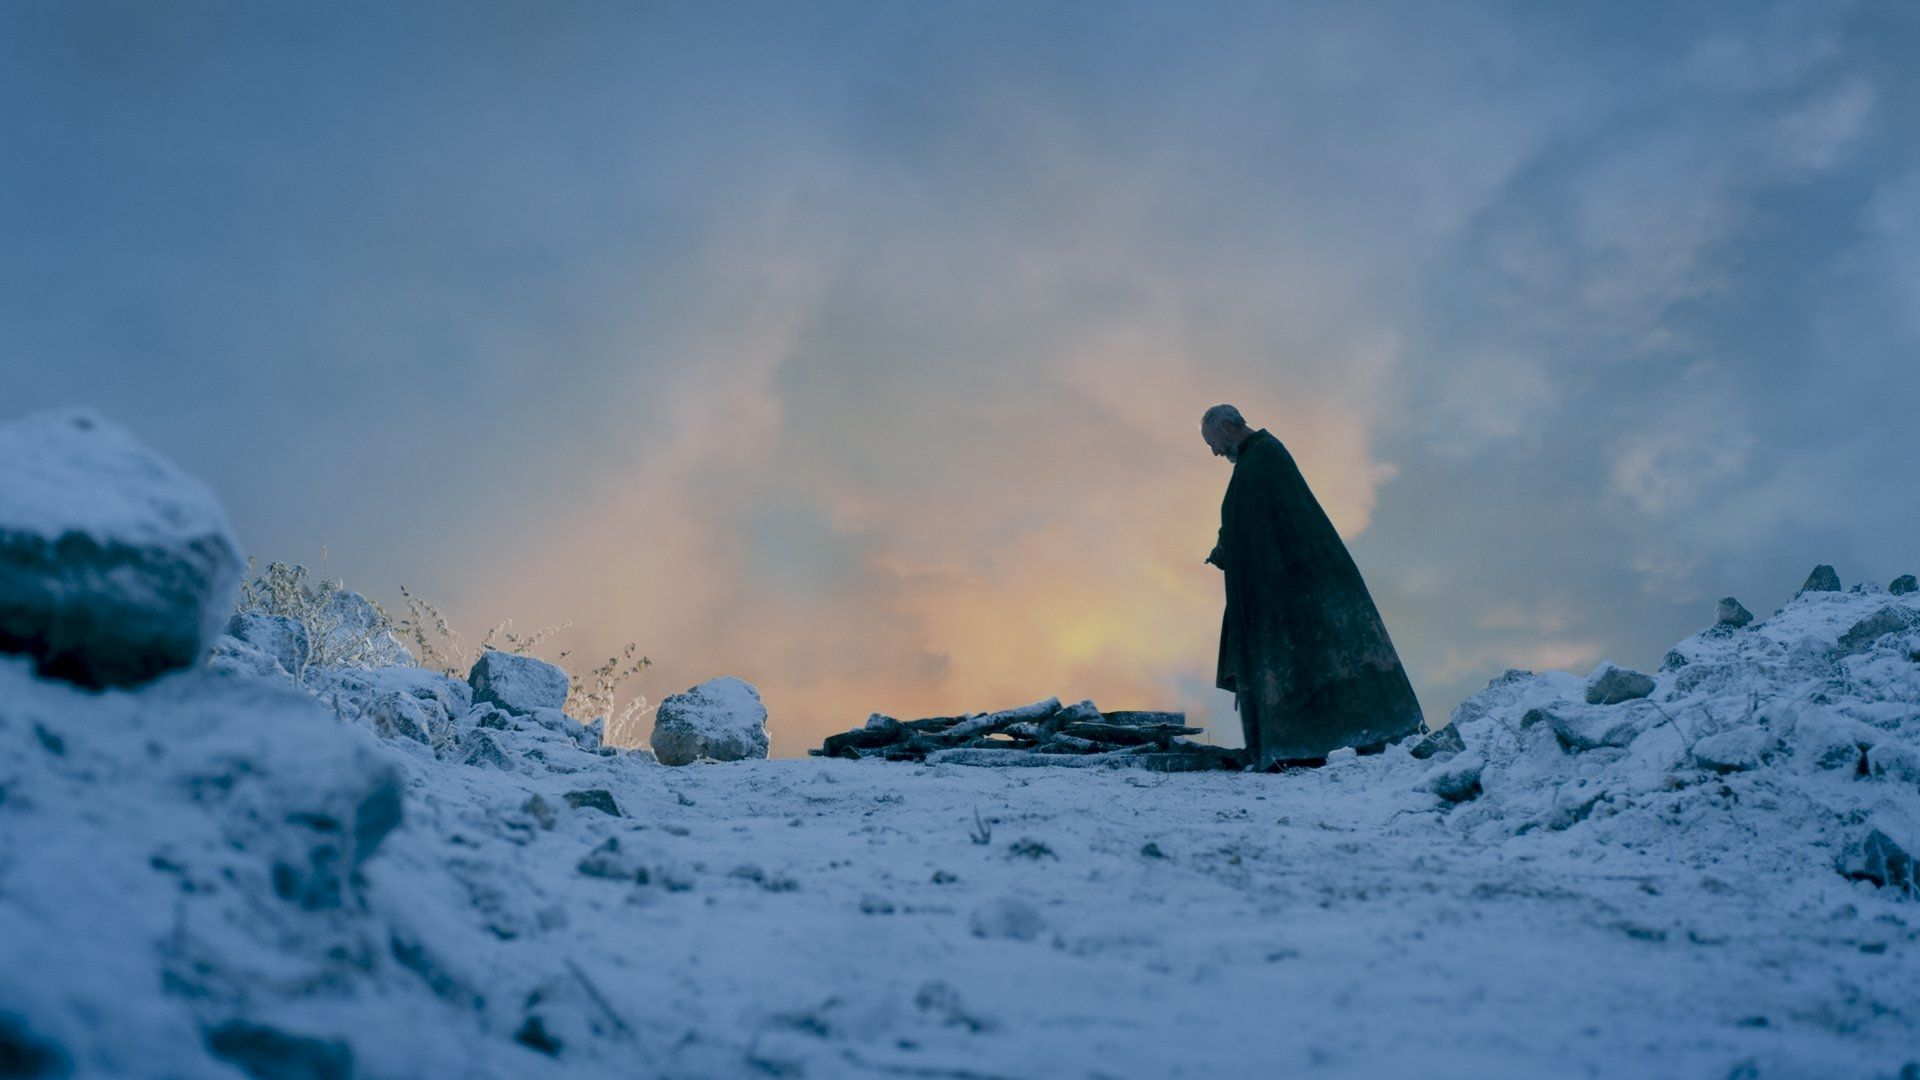 Game of Thrones snow